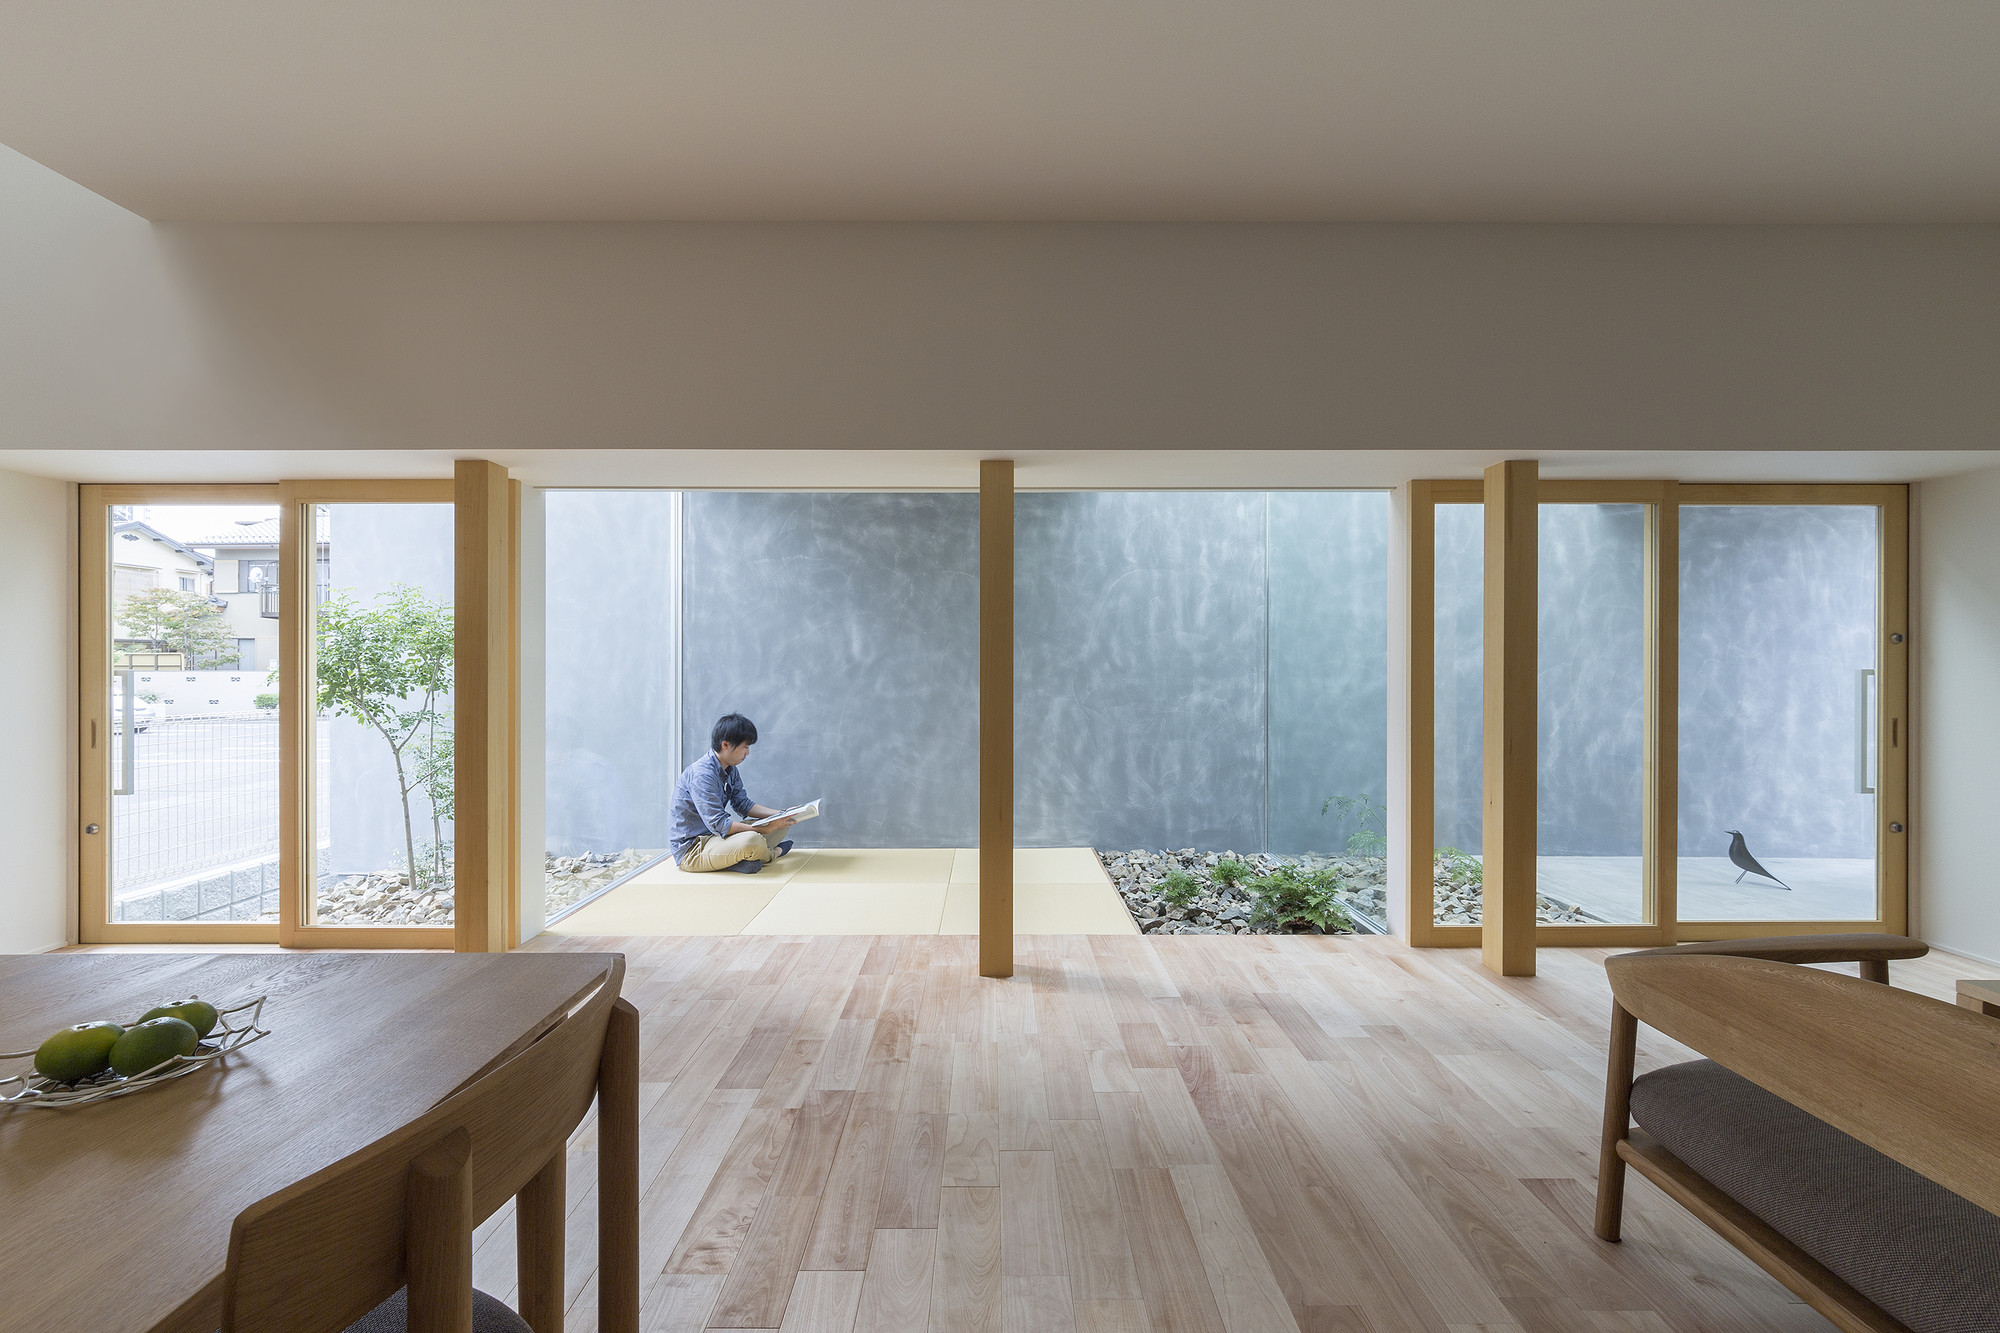 Casa kusatsu alts design office archdaily brasil for Office design archdaily